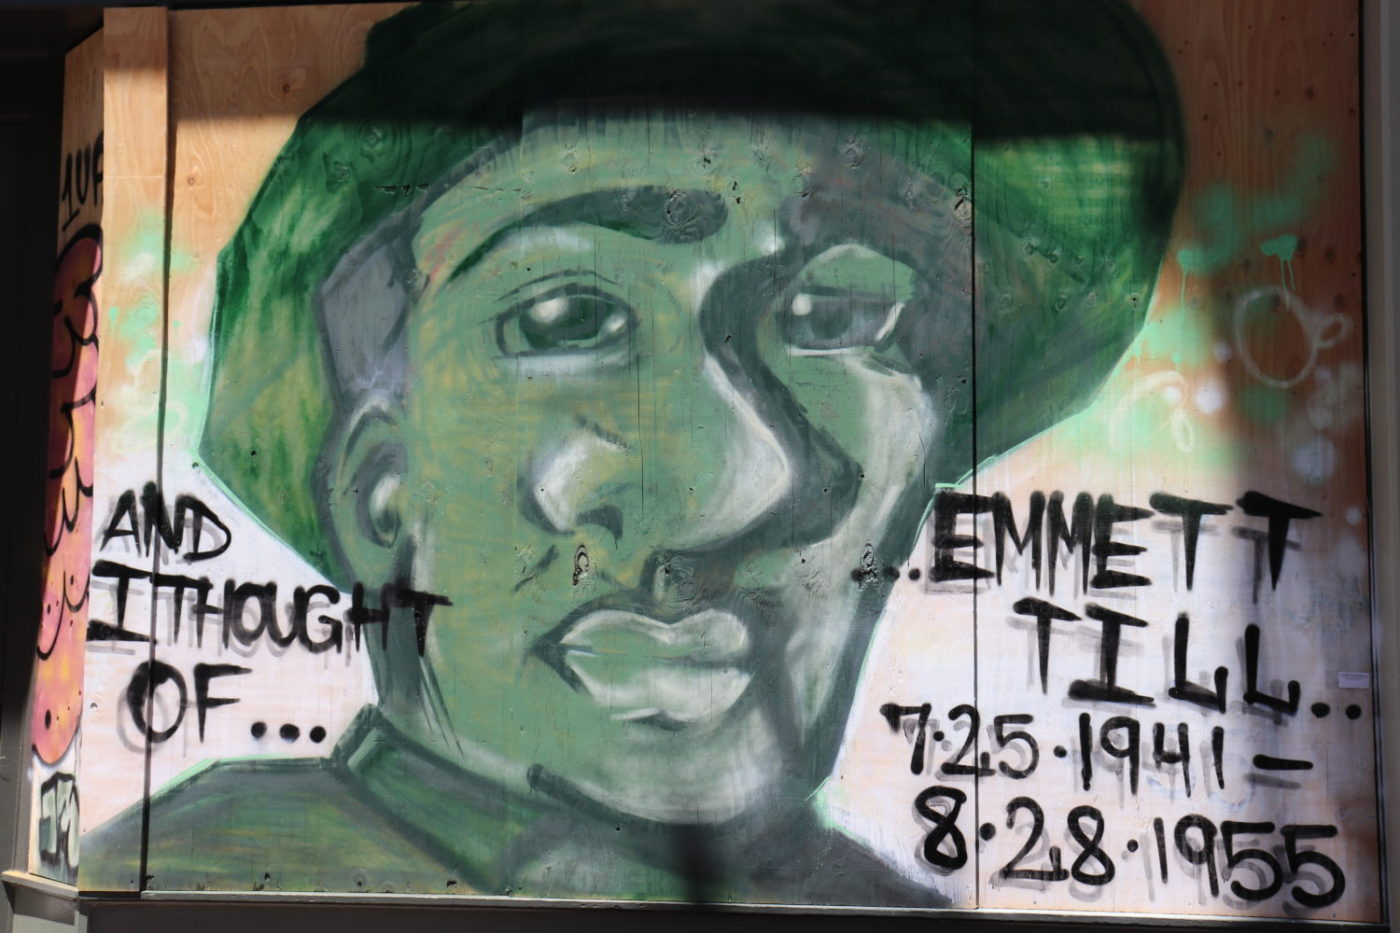 And-I-thought-of-...-Emmett-Till-mural-on-boarded-up-window-Oakland-0720-by-JR-1400x933, Supervisor Shamann Walton's CAREN Act seeks to legally address the weaponization of calling 911, Local News & Views